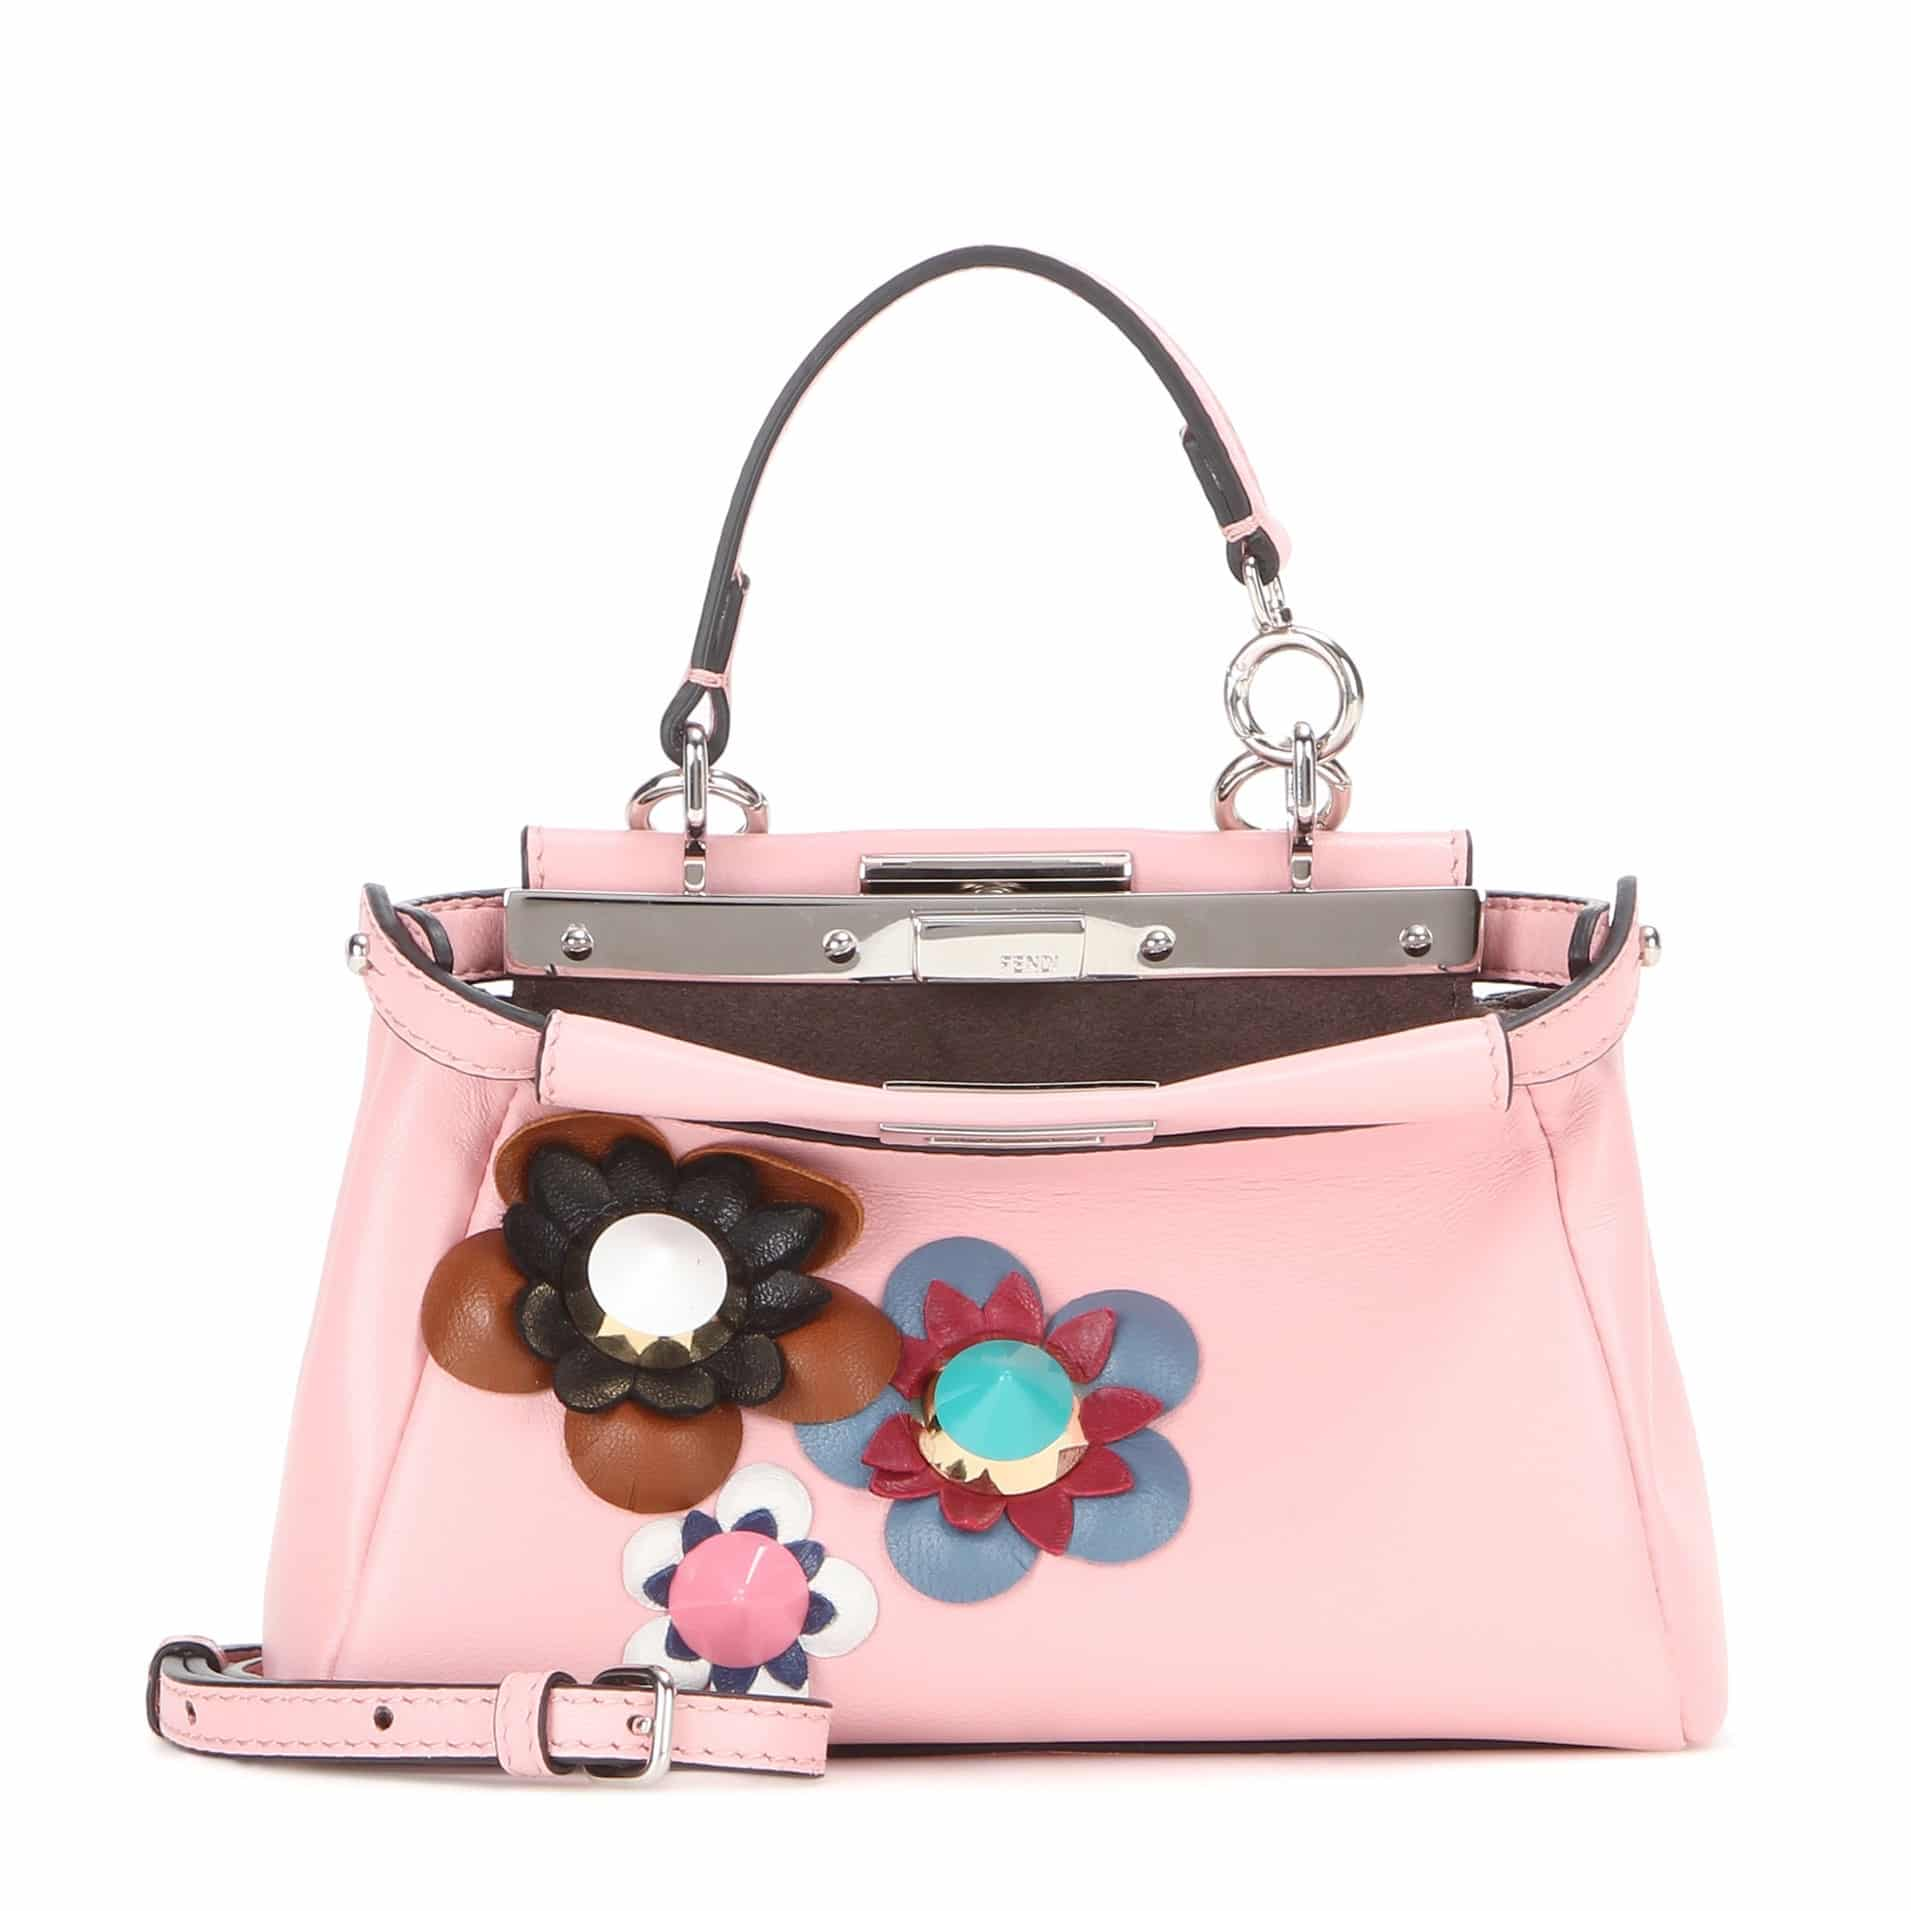 Fendi Flowerland Collection From Springsummer 2016 Spotted Fashion